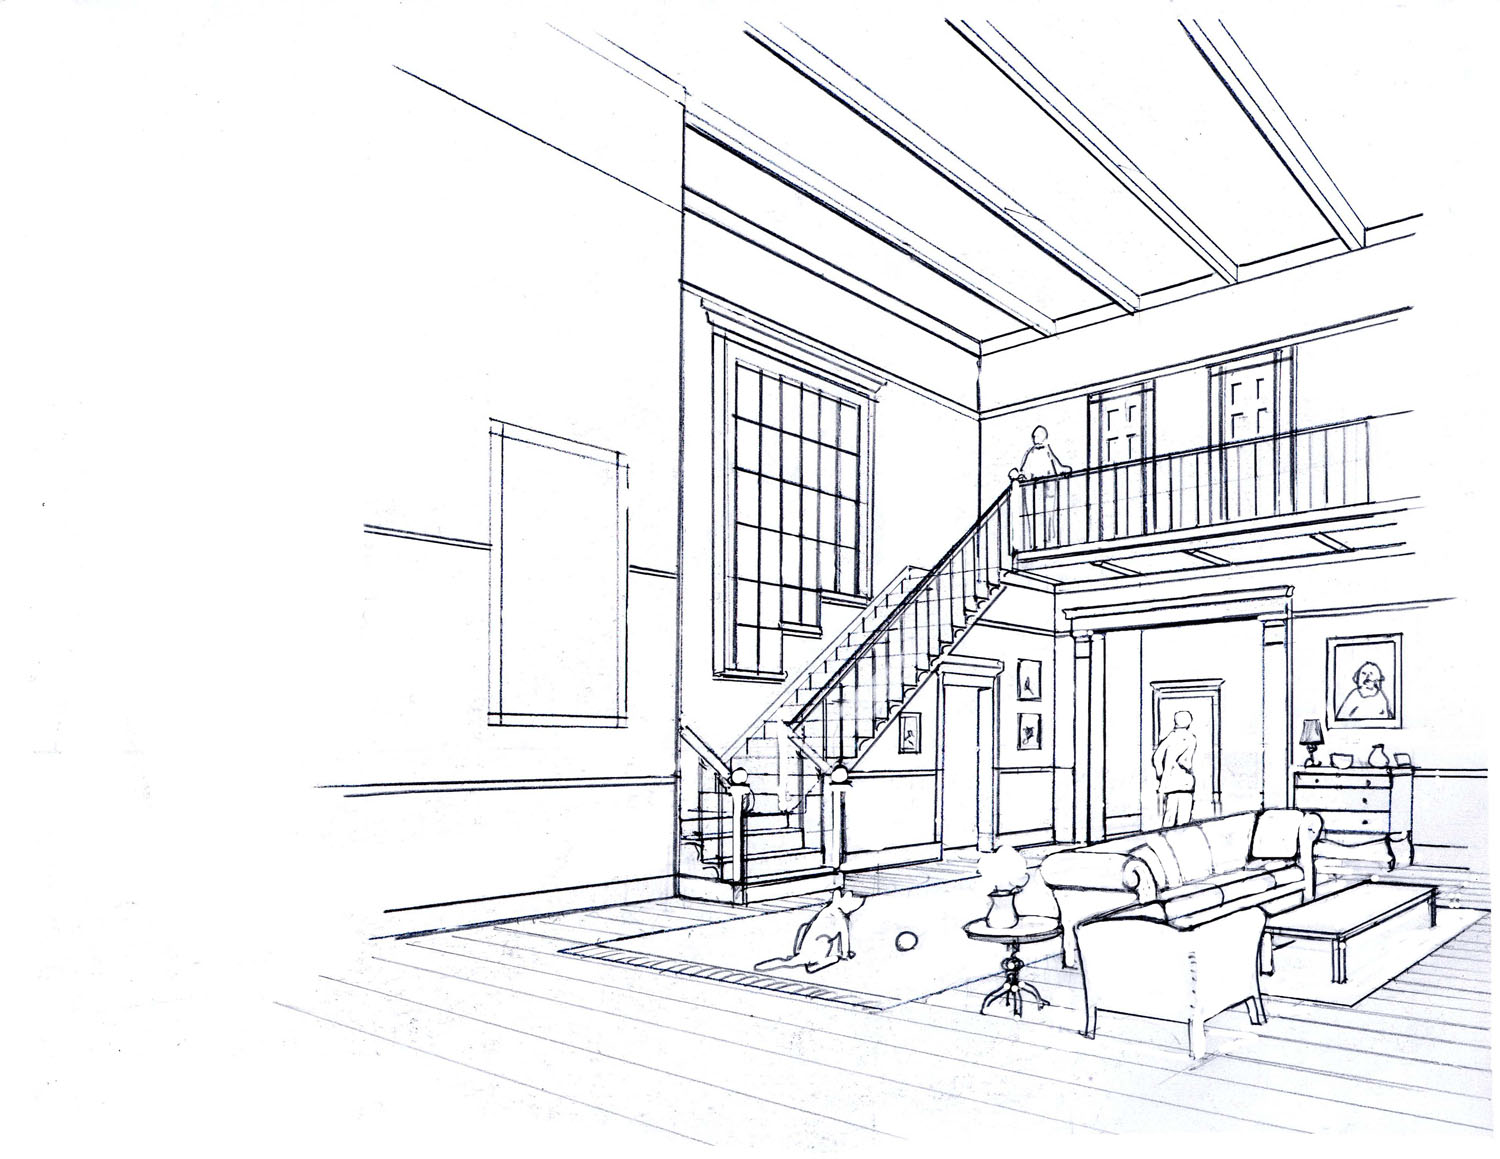 Drawn office perspective drawing Perspective A 3 Drawing: Visual